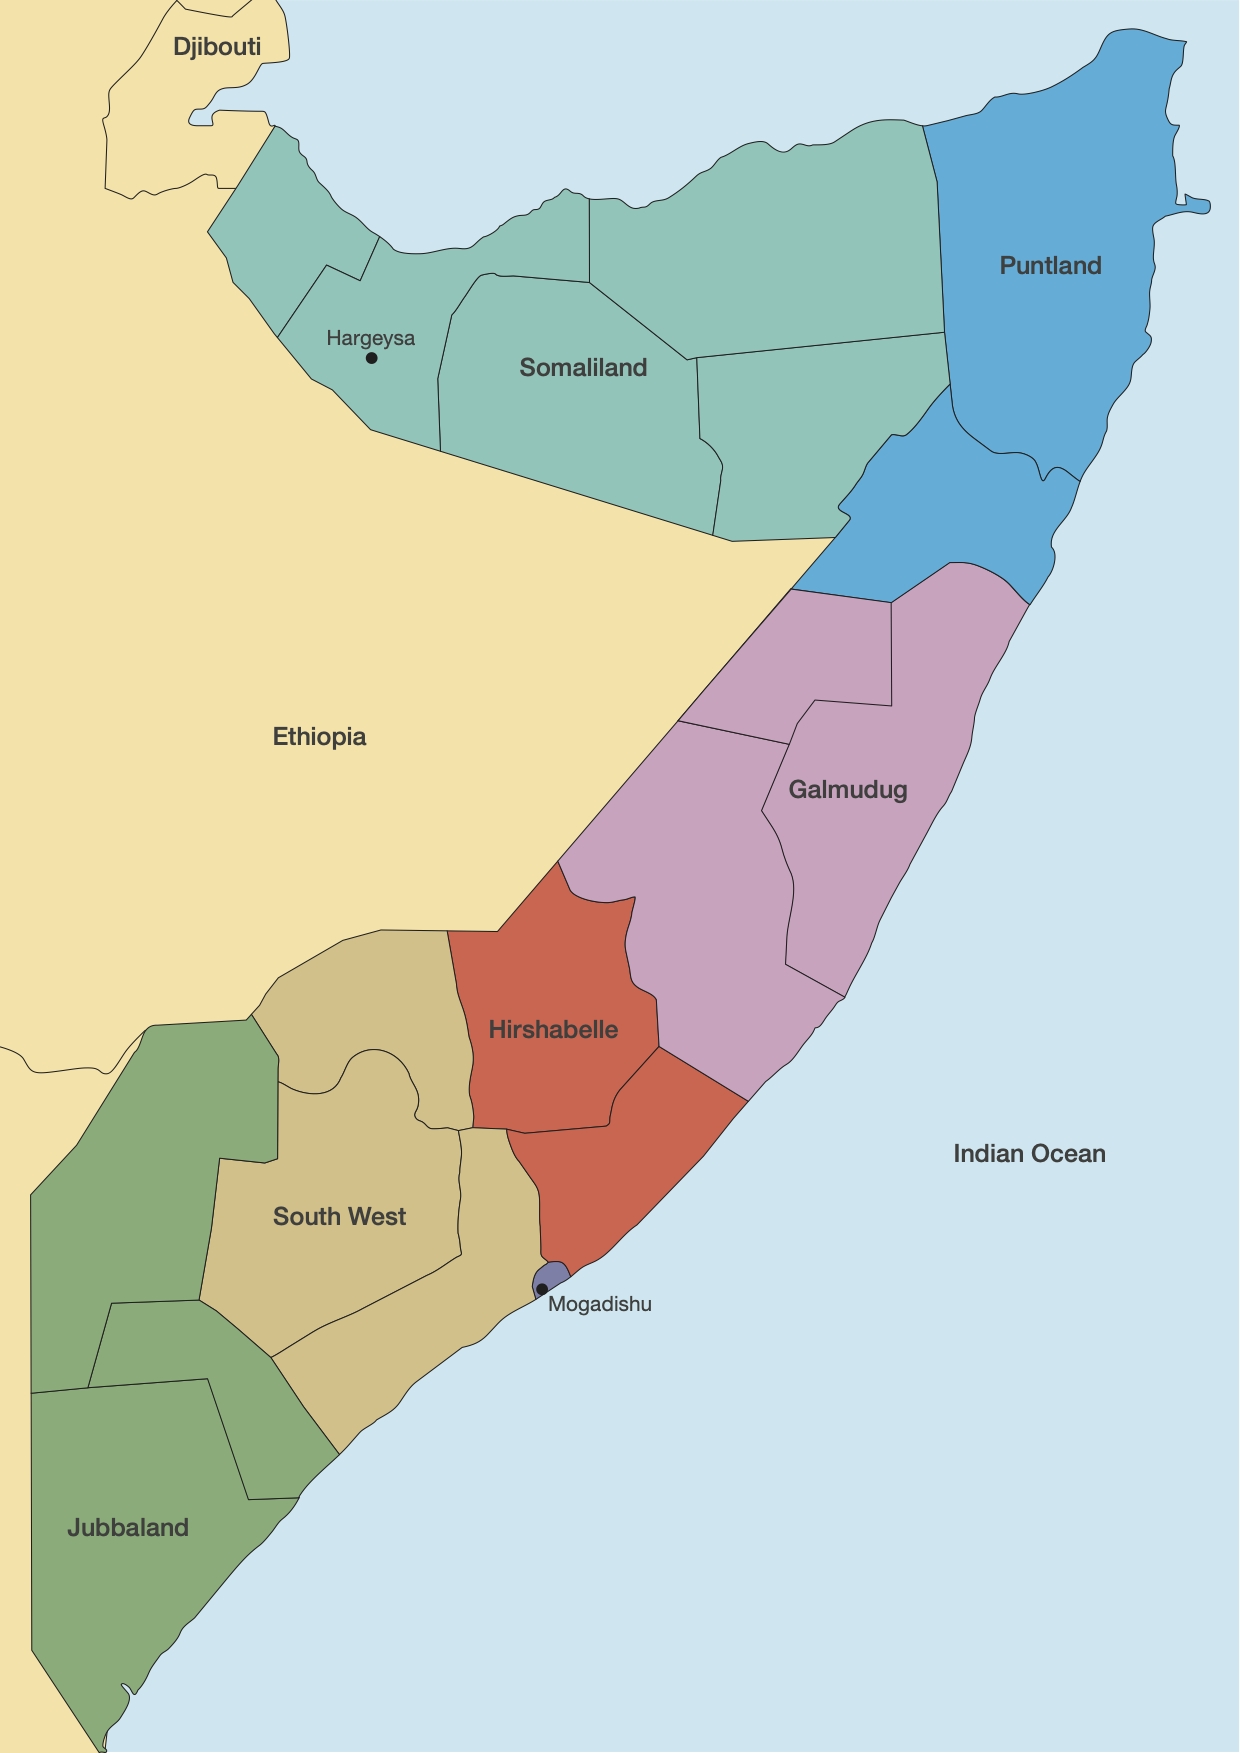 Somalia and its five federal states